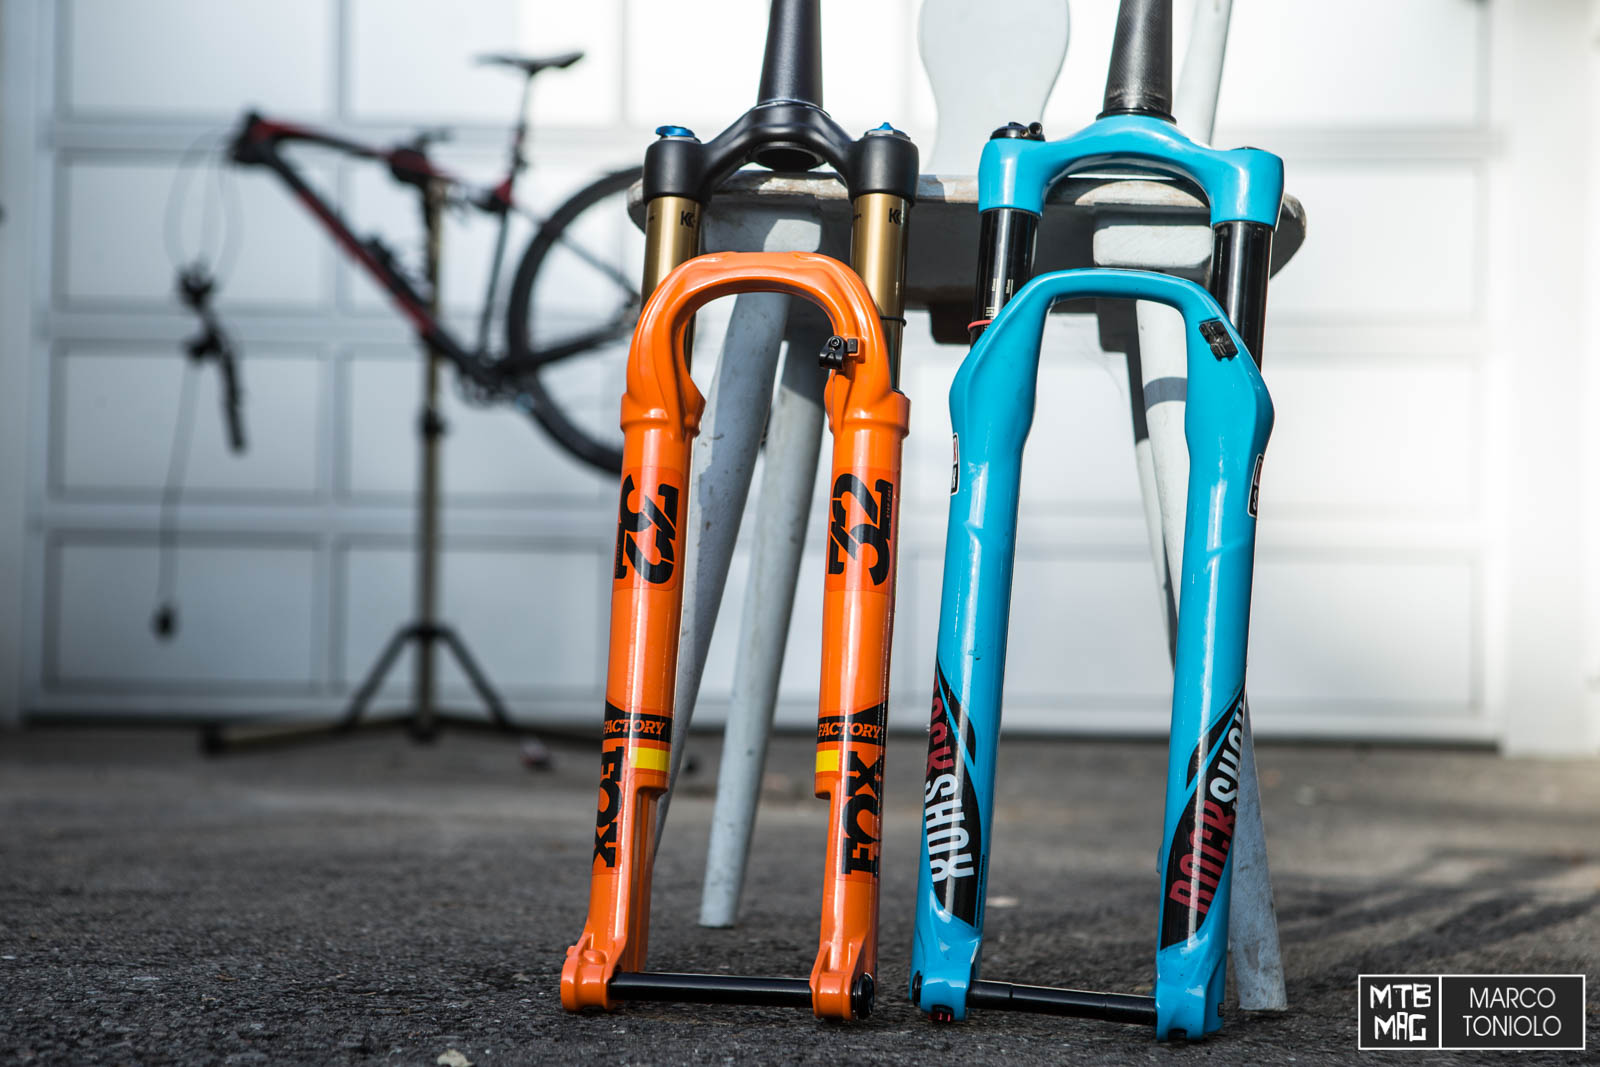 5d83bd6055d66 So far it almost seems that Fox and RockShox have been copying one other